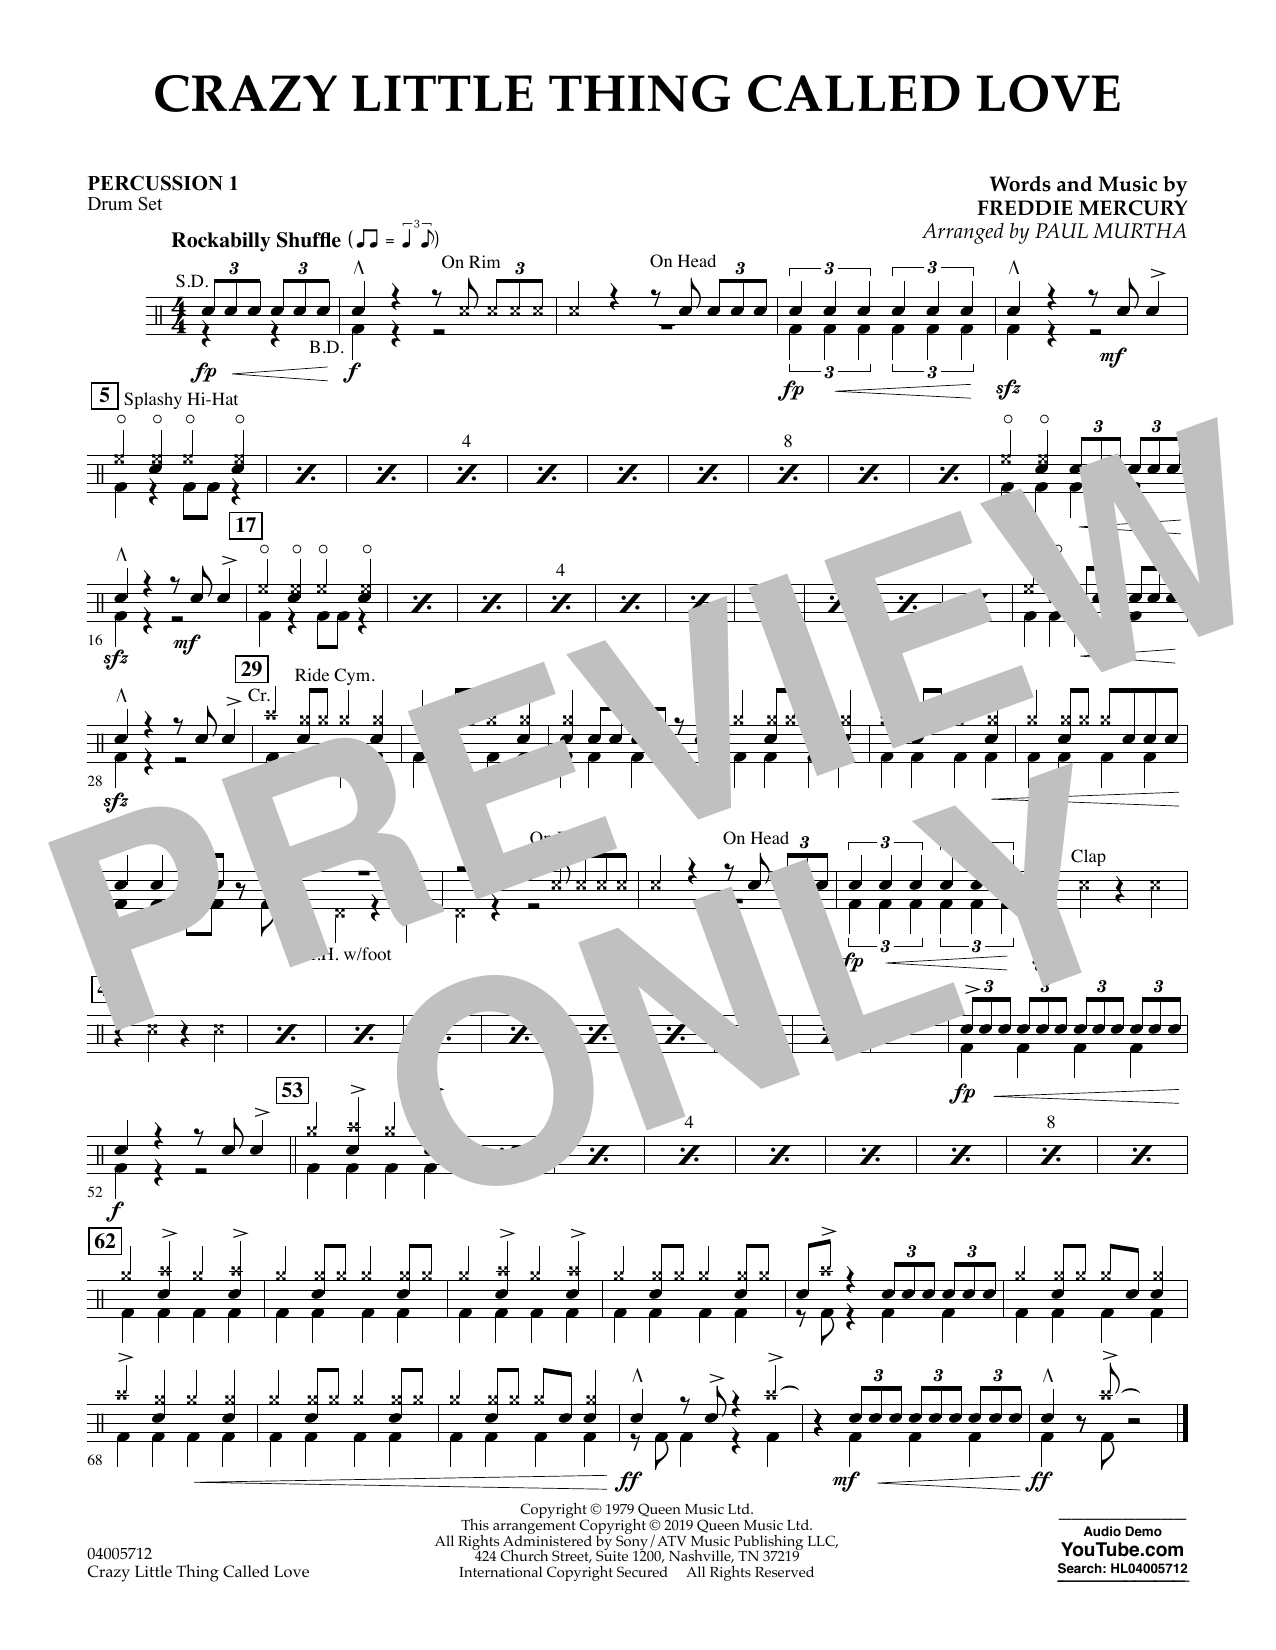 Crazy Little Thing Called Love (arr. Paul Murtha) - Percussion 1 (Concert Band)